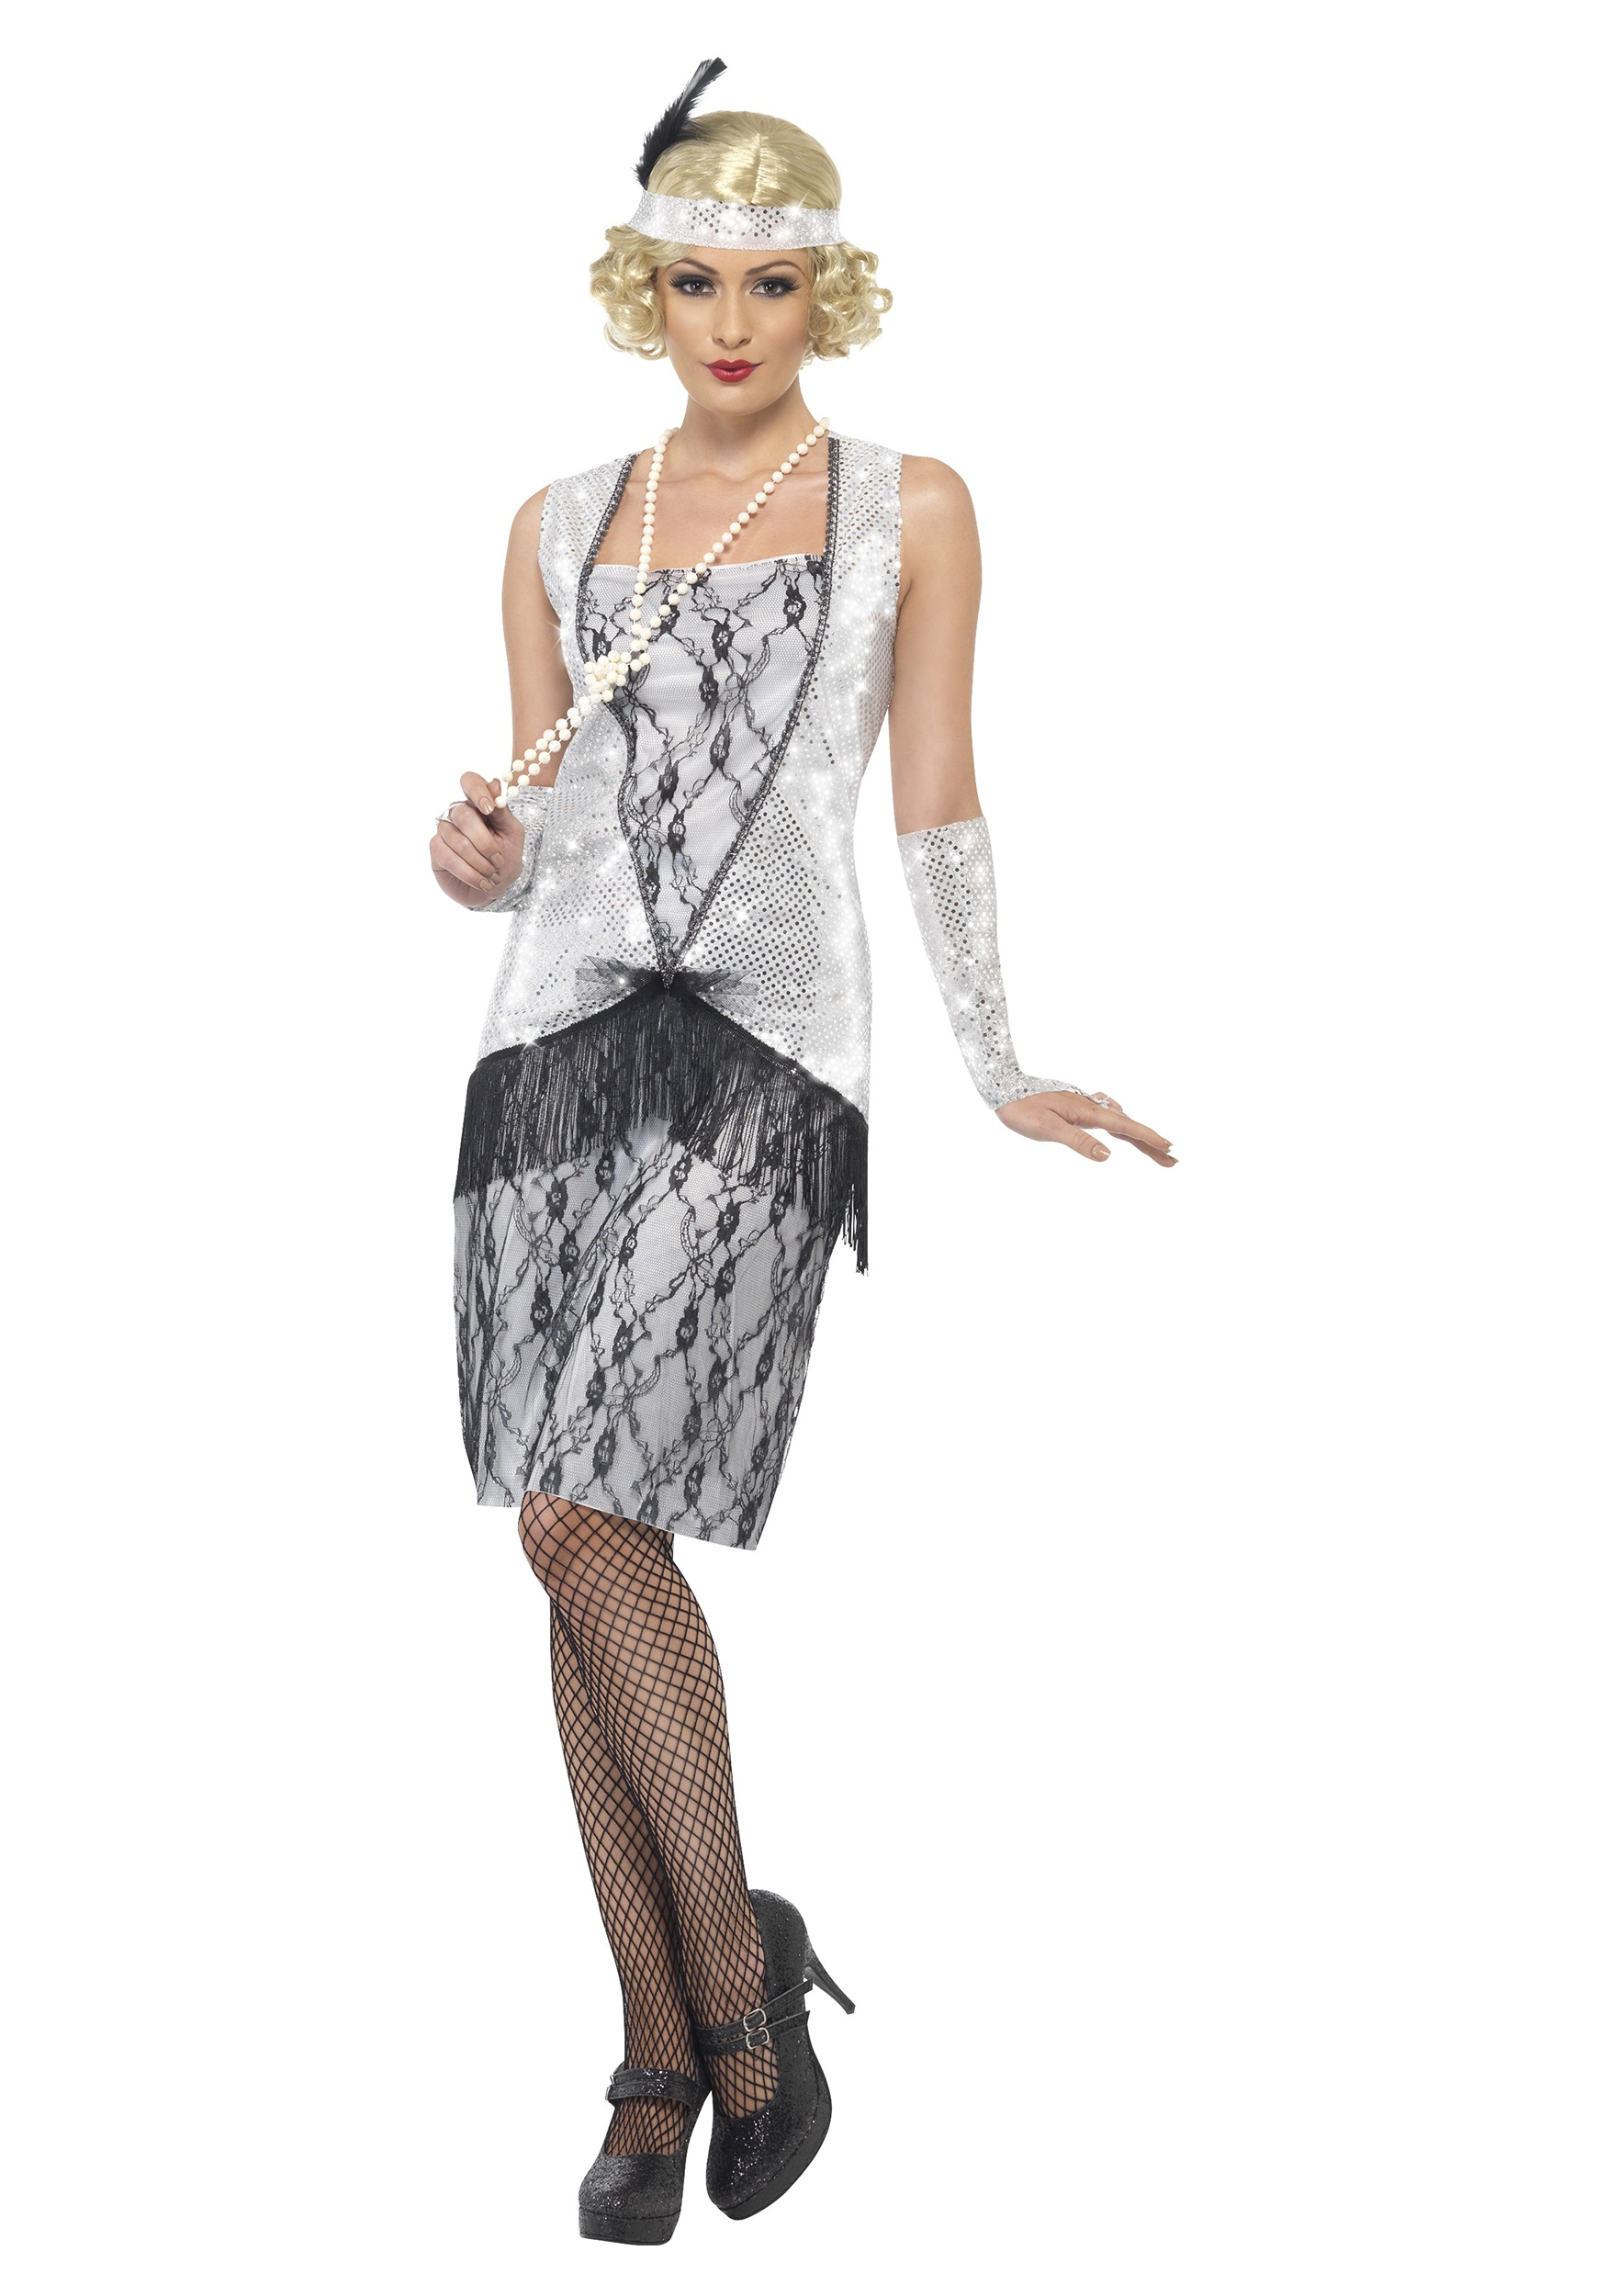 the flapper Flapper costumes 1920's style flapper costumes find the perfect flapper costume or flapper dress from the widest selection on the web great prices and fast shipping from kids to plus size flappers and even gangster costumes, we have it all.